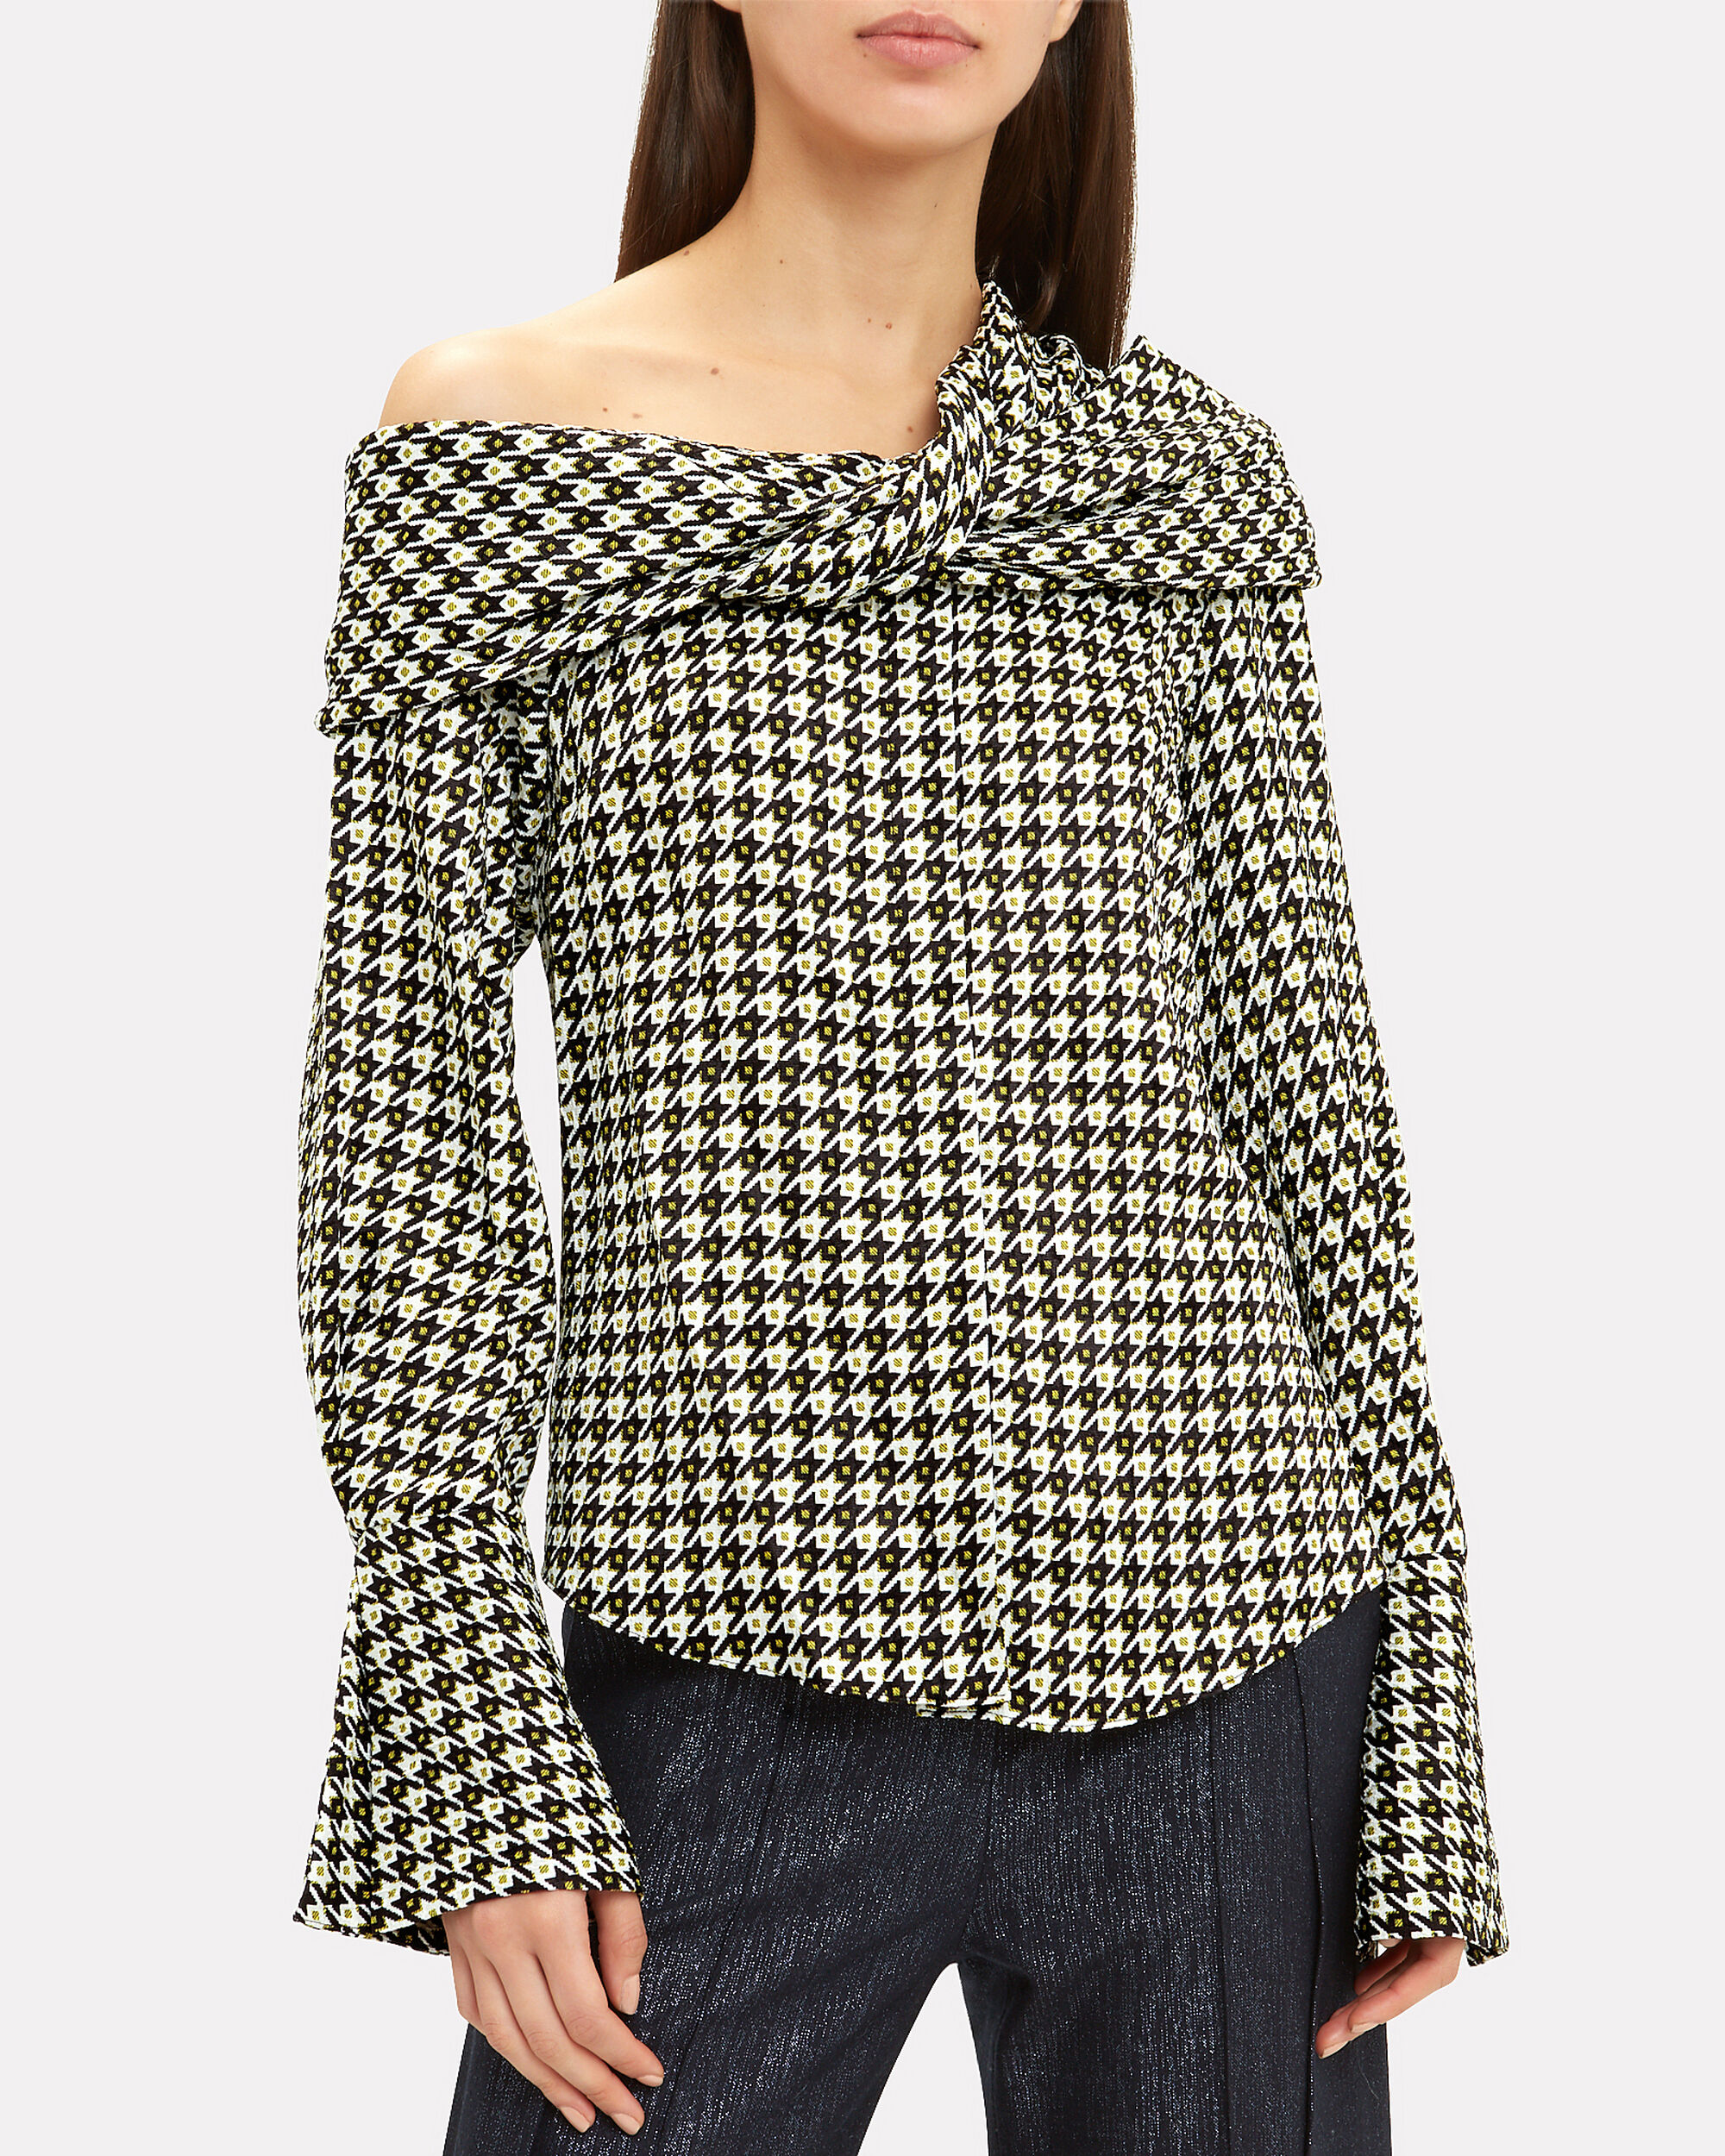 Calla Draped Houndstooth Top, BLK/WHT, hi-res